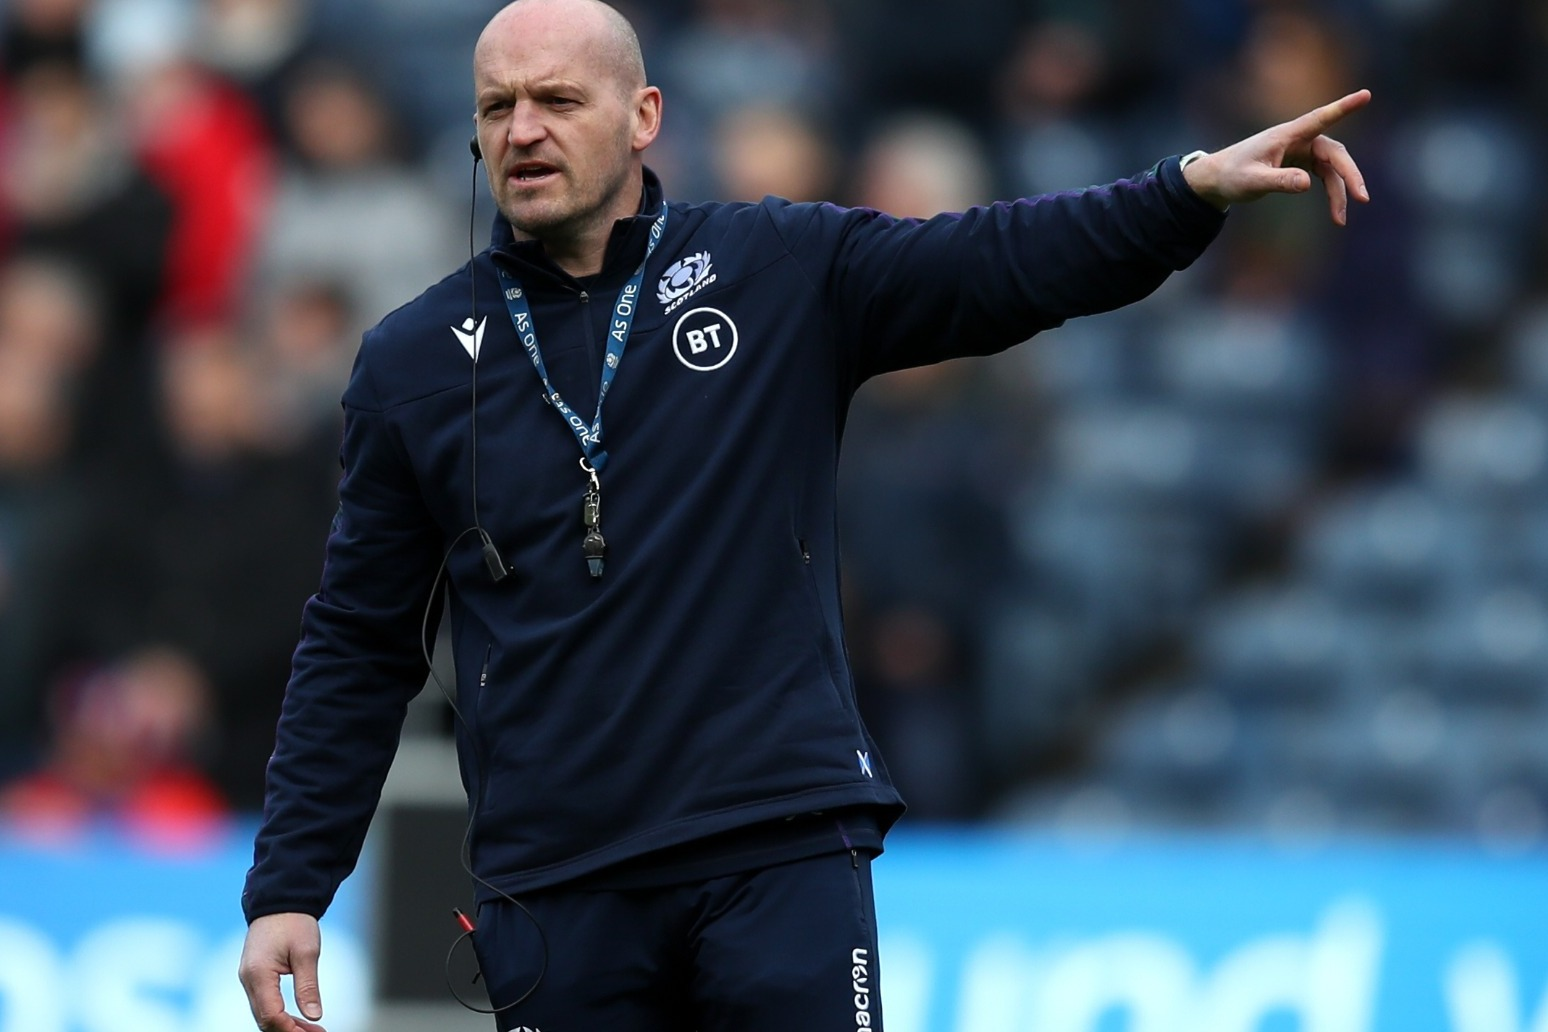 Gregor Townsend forced to make changes as Scotland trio ruled out of Wales clash